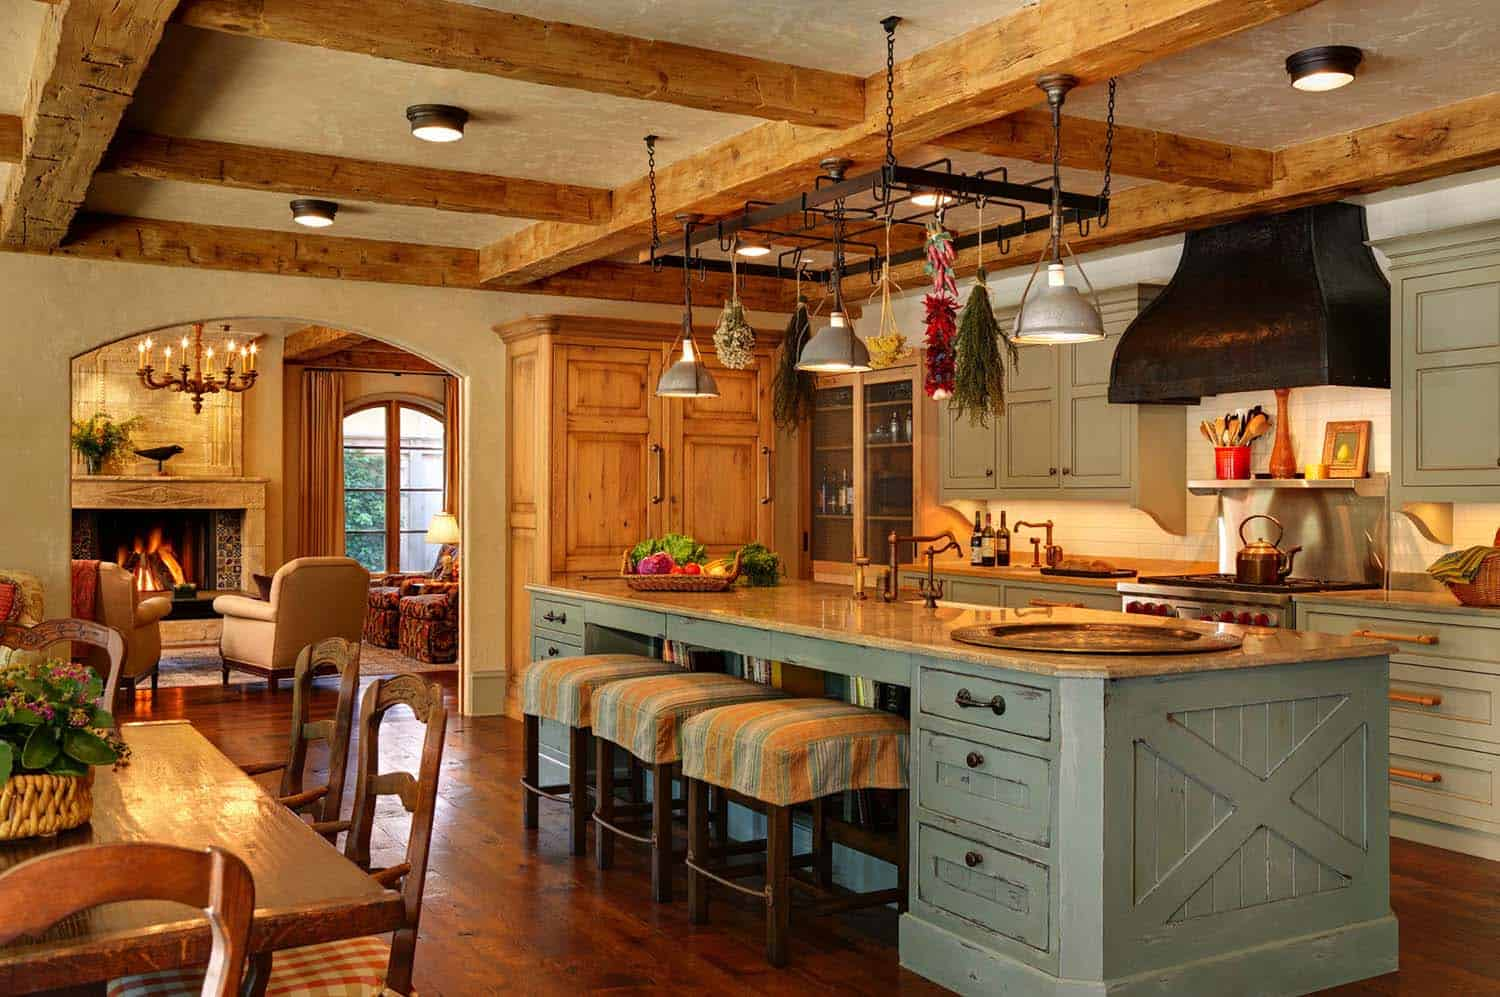 Amazing Country Chic Kitchens-12-1 Kindesign